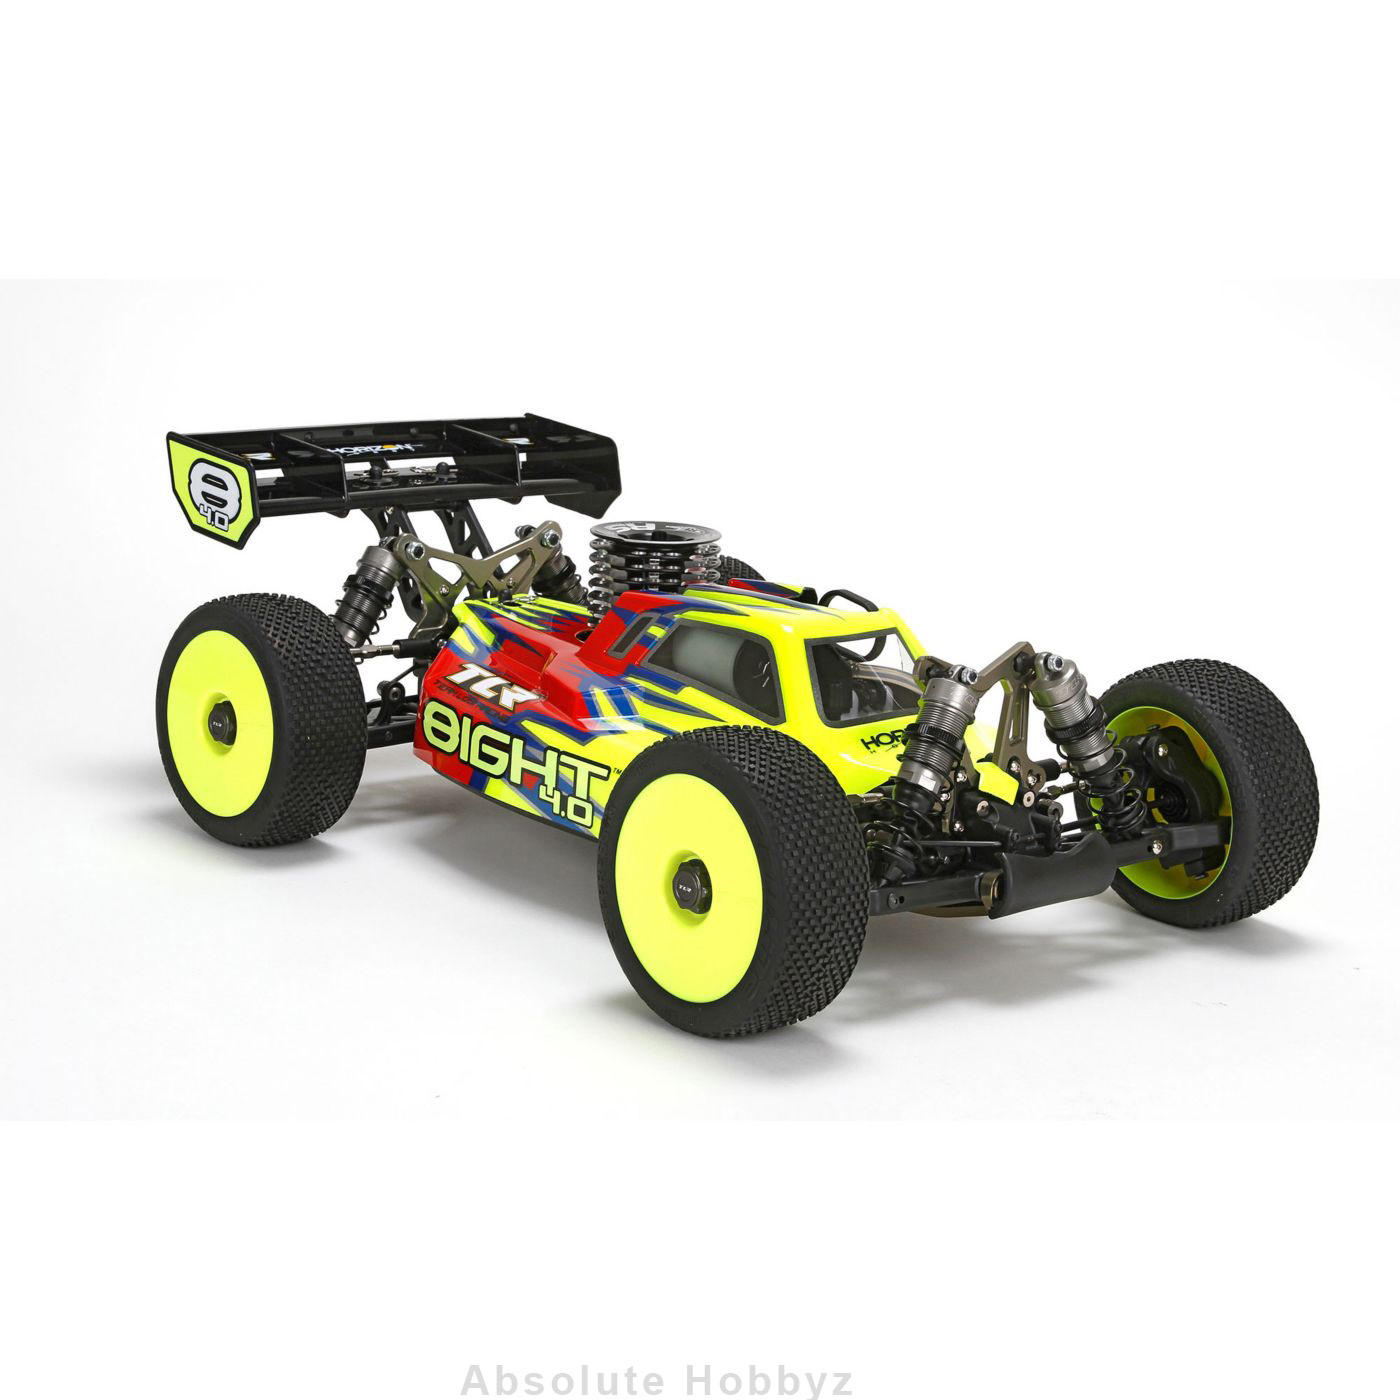 rc buggy nitro with Team Losi Racing 18 8ight 40 4wd Nitro Buggy Race Kit P 508040 on Brushless RC Electric Buggy as well Traxxas Slash 4x4 Buggy Conversion Part 3 moreover XRAY XB8 2015 Specs 1 8 Luxury Nitro Off Road Car 350010 besides Watch likewise LicensedLamborghiniAventadorLP700 4Roadster114ElectricRTRRCCar.